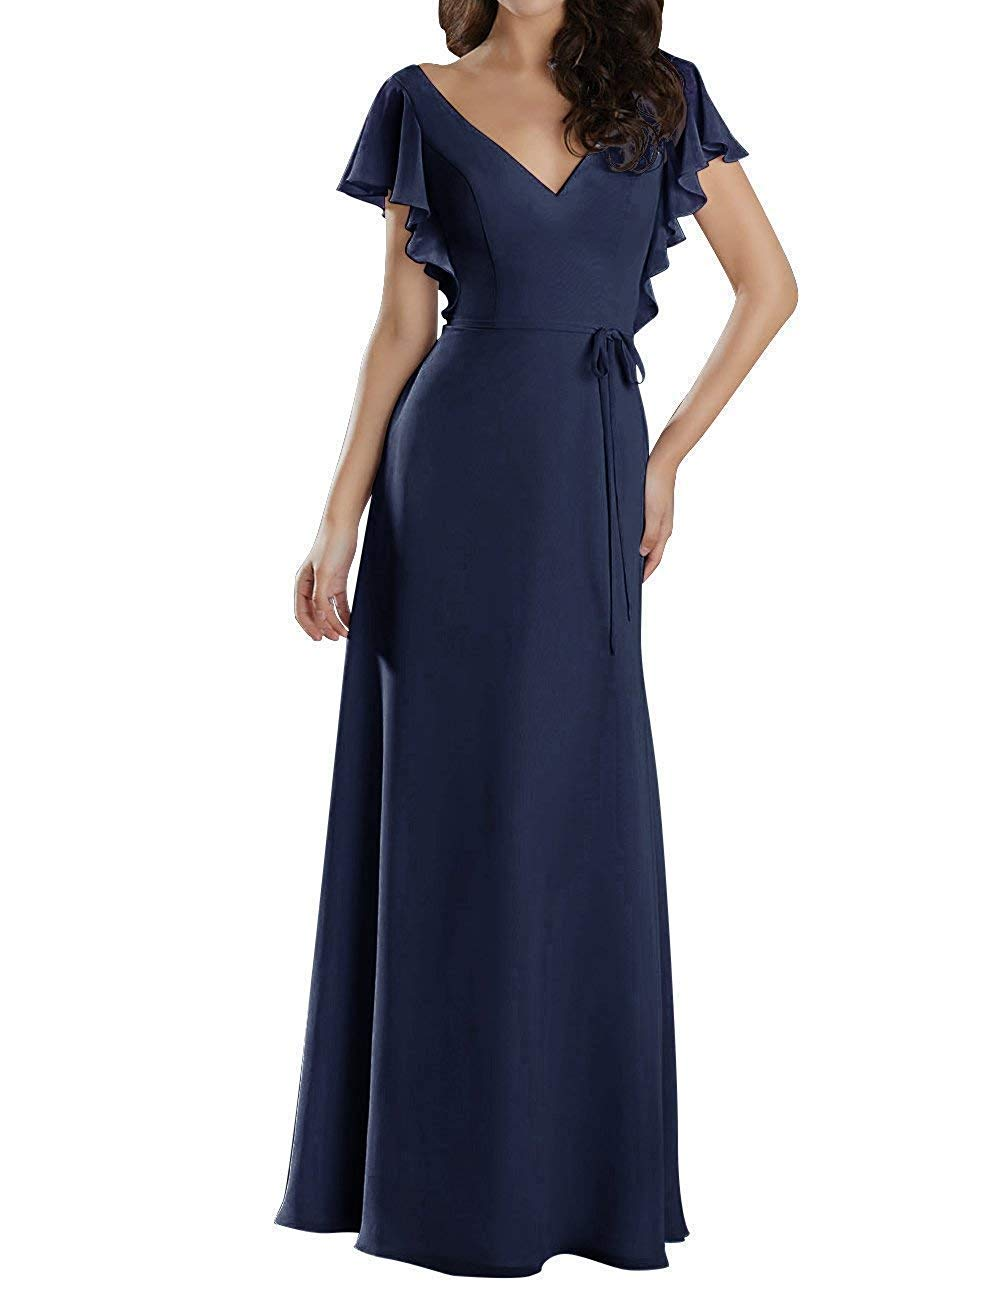 Jqld Womens Ruffles Chiffon Long Bridesmaid Dresses Short Sleeve Formal Evening Prom Gowns Navy Blue Us8